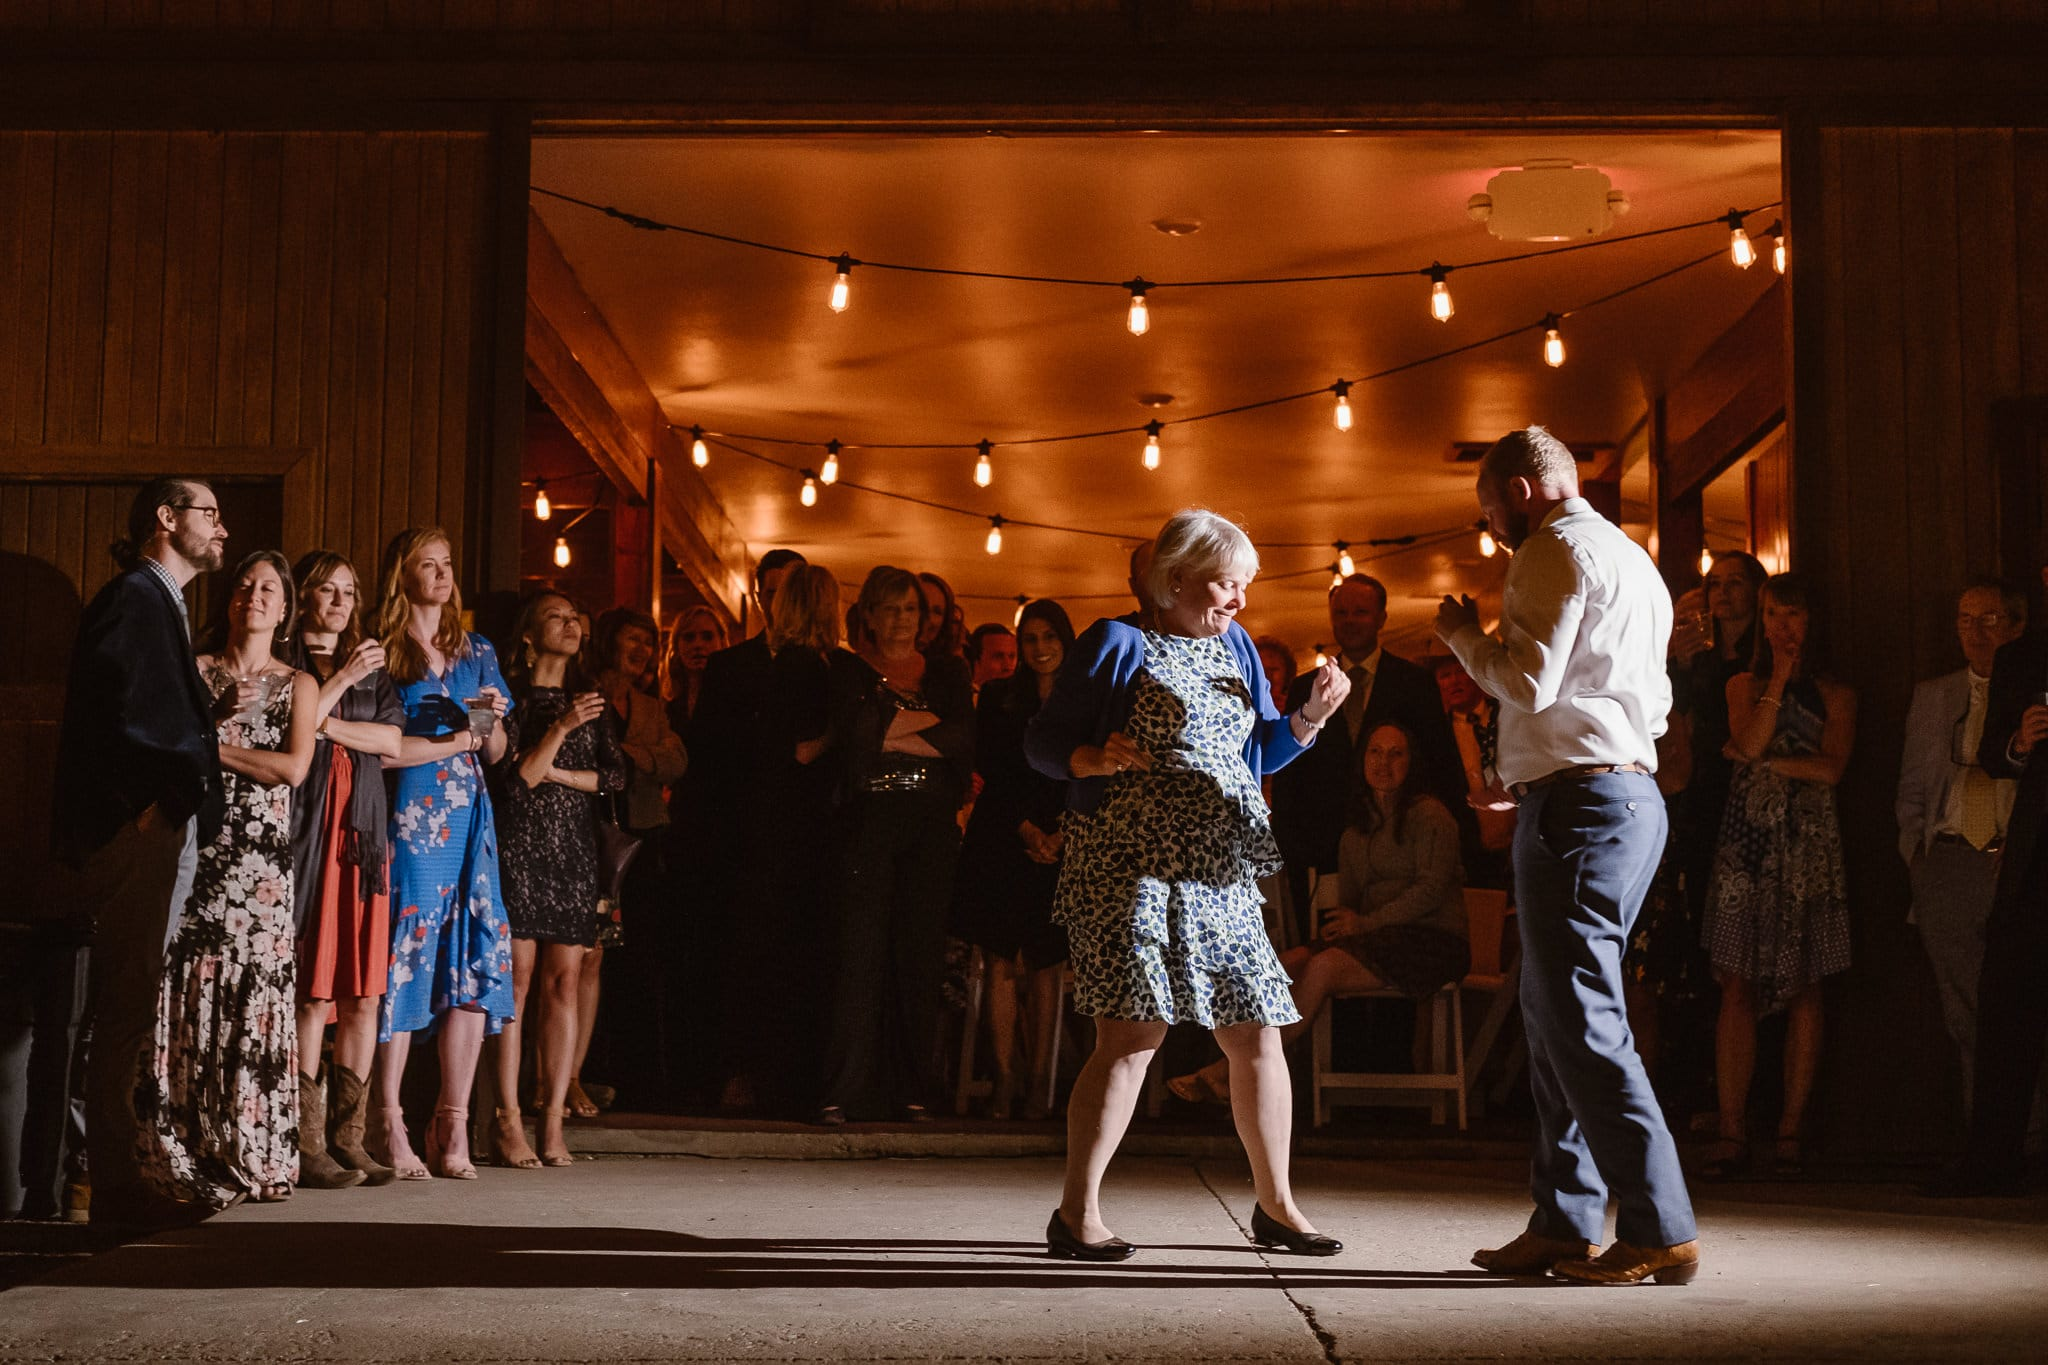 Steamboat Springs wedding photographer, La Joya Dulce wedding, Colorado ranch wedding venues, groom and mother dancing